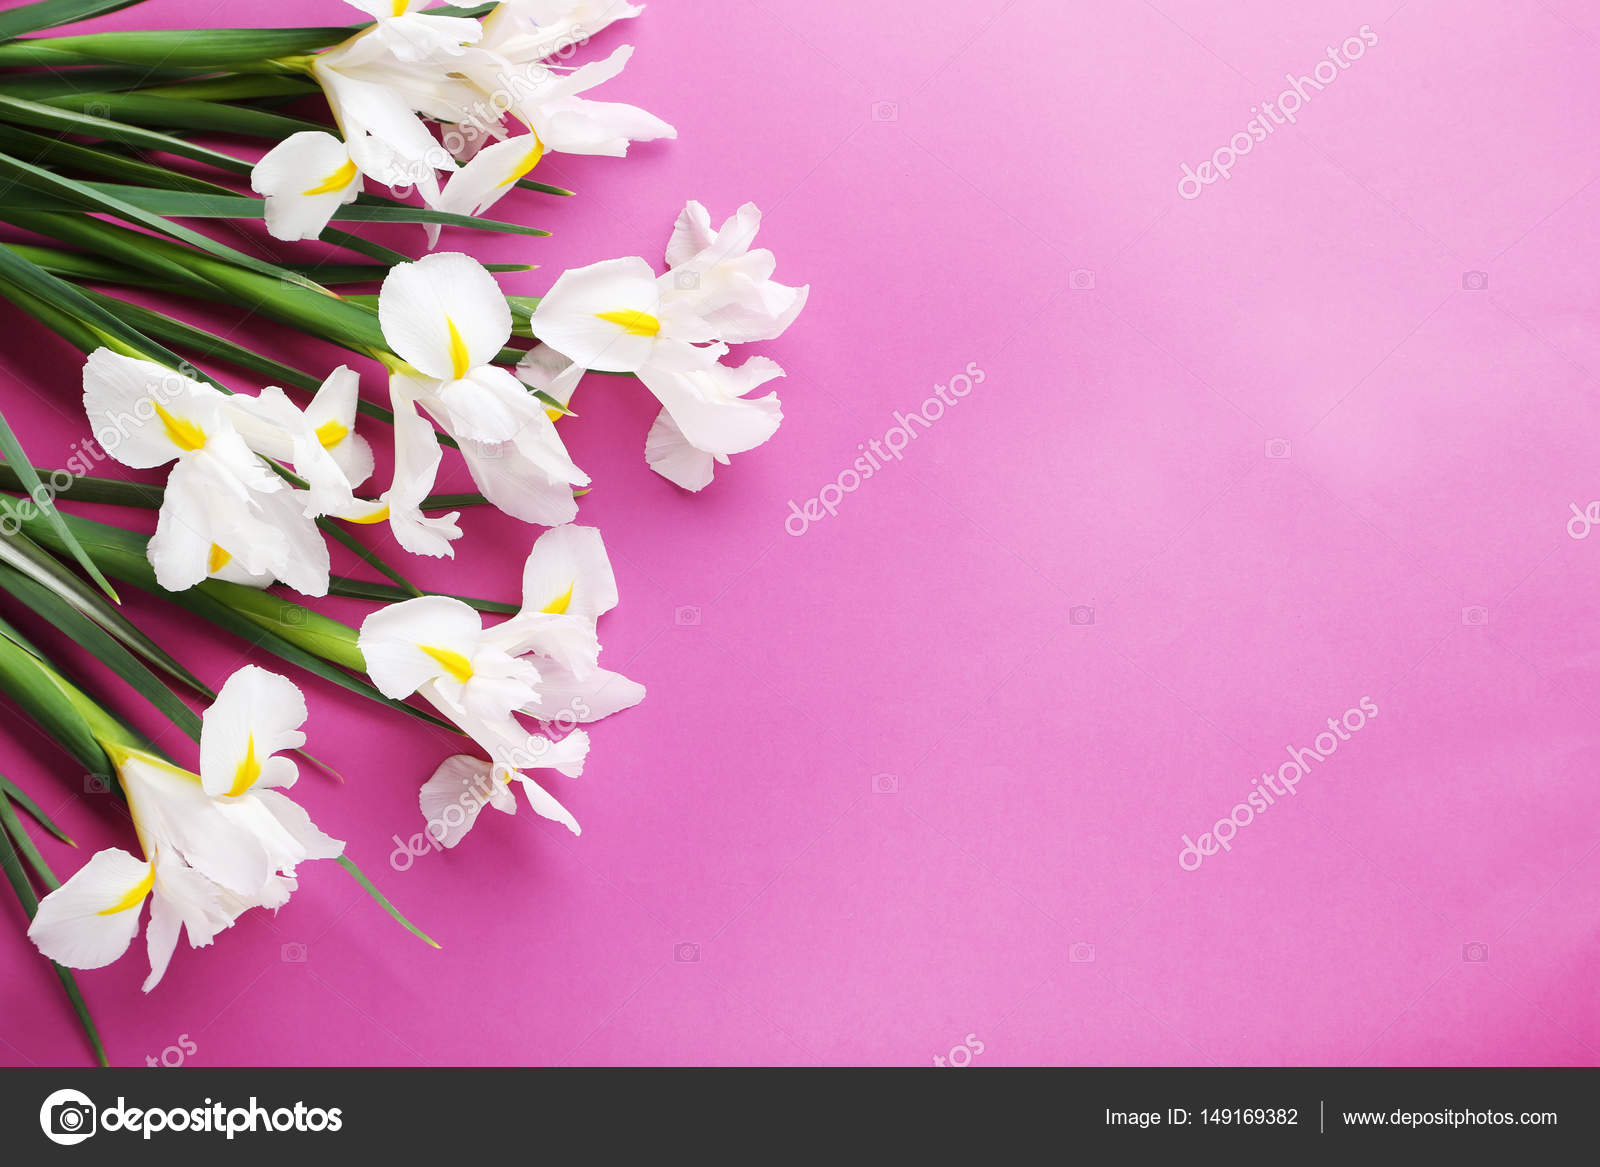 Bouquet of white iris flowers stock photo 5seconds 149169382 bouquet of white iris flowers on pink background photo by 5seconds izmirmasajfo Choice Image